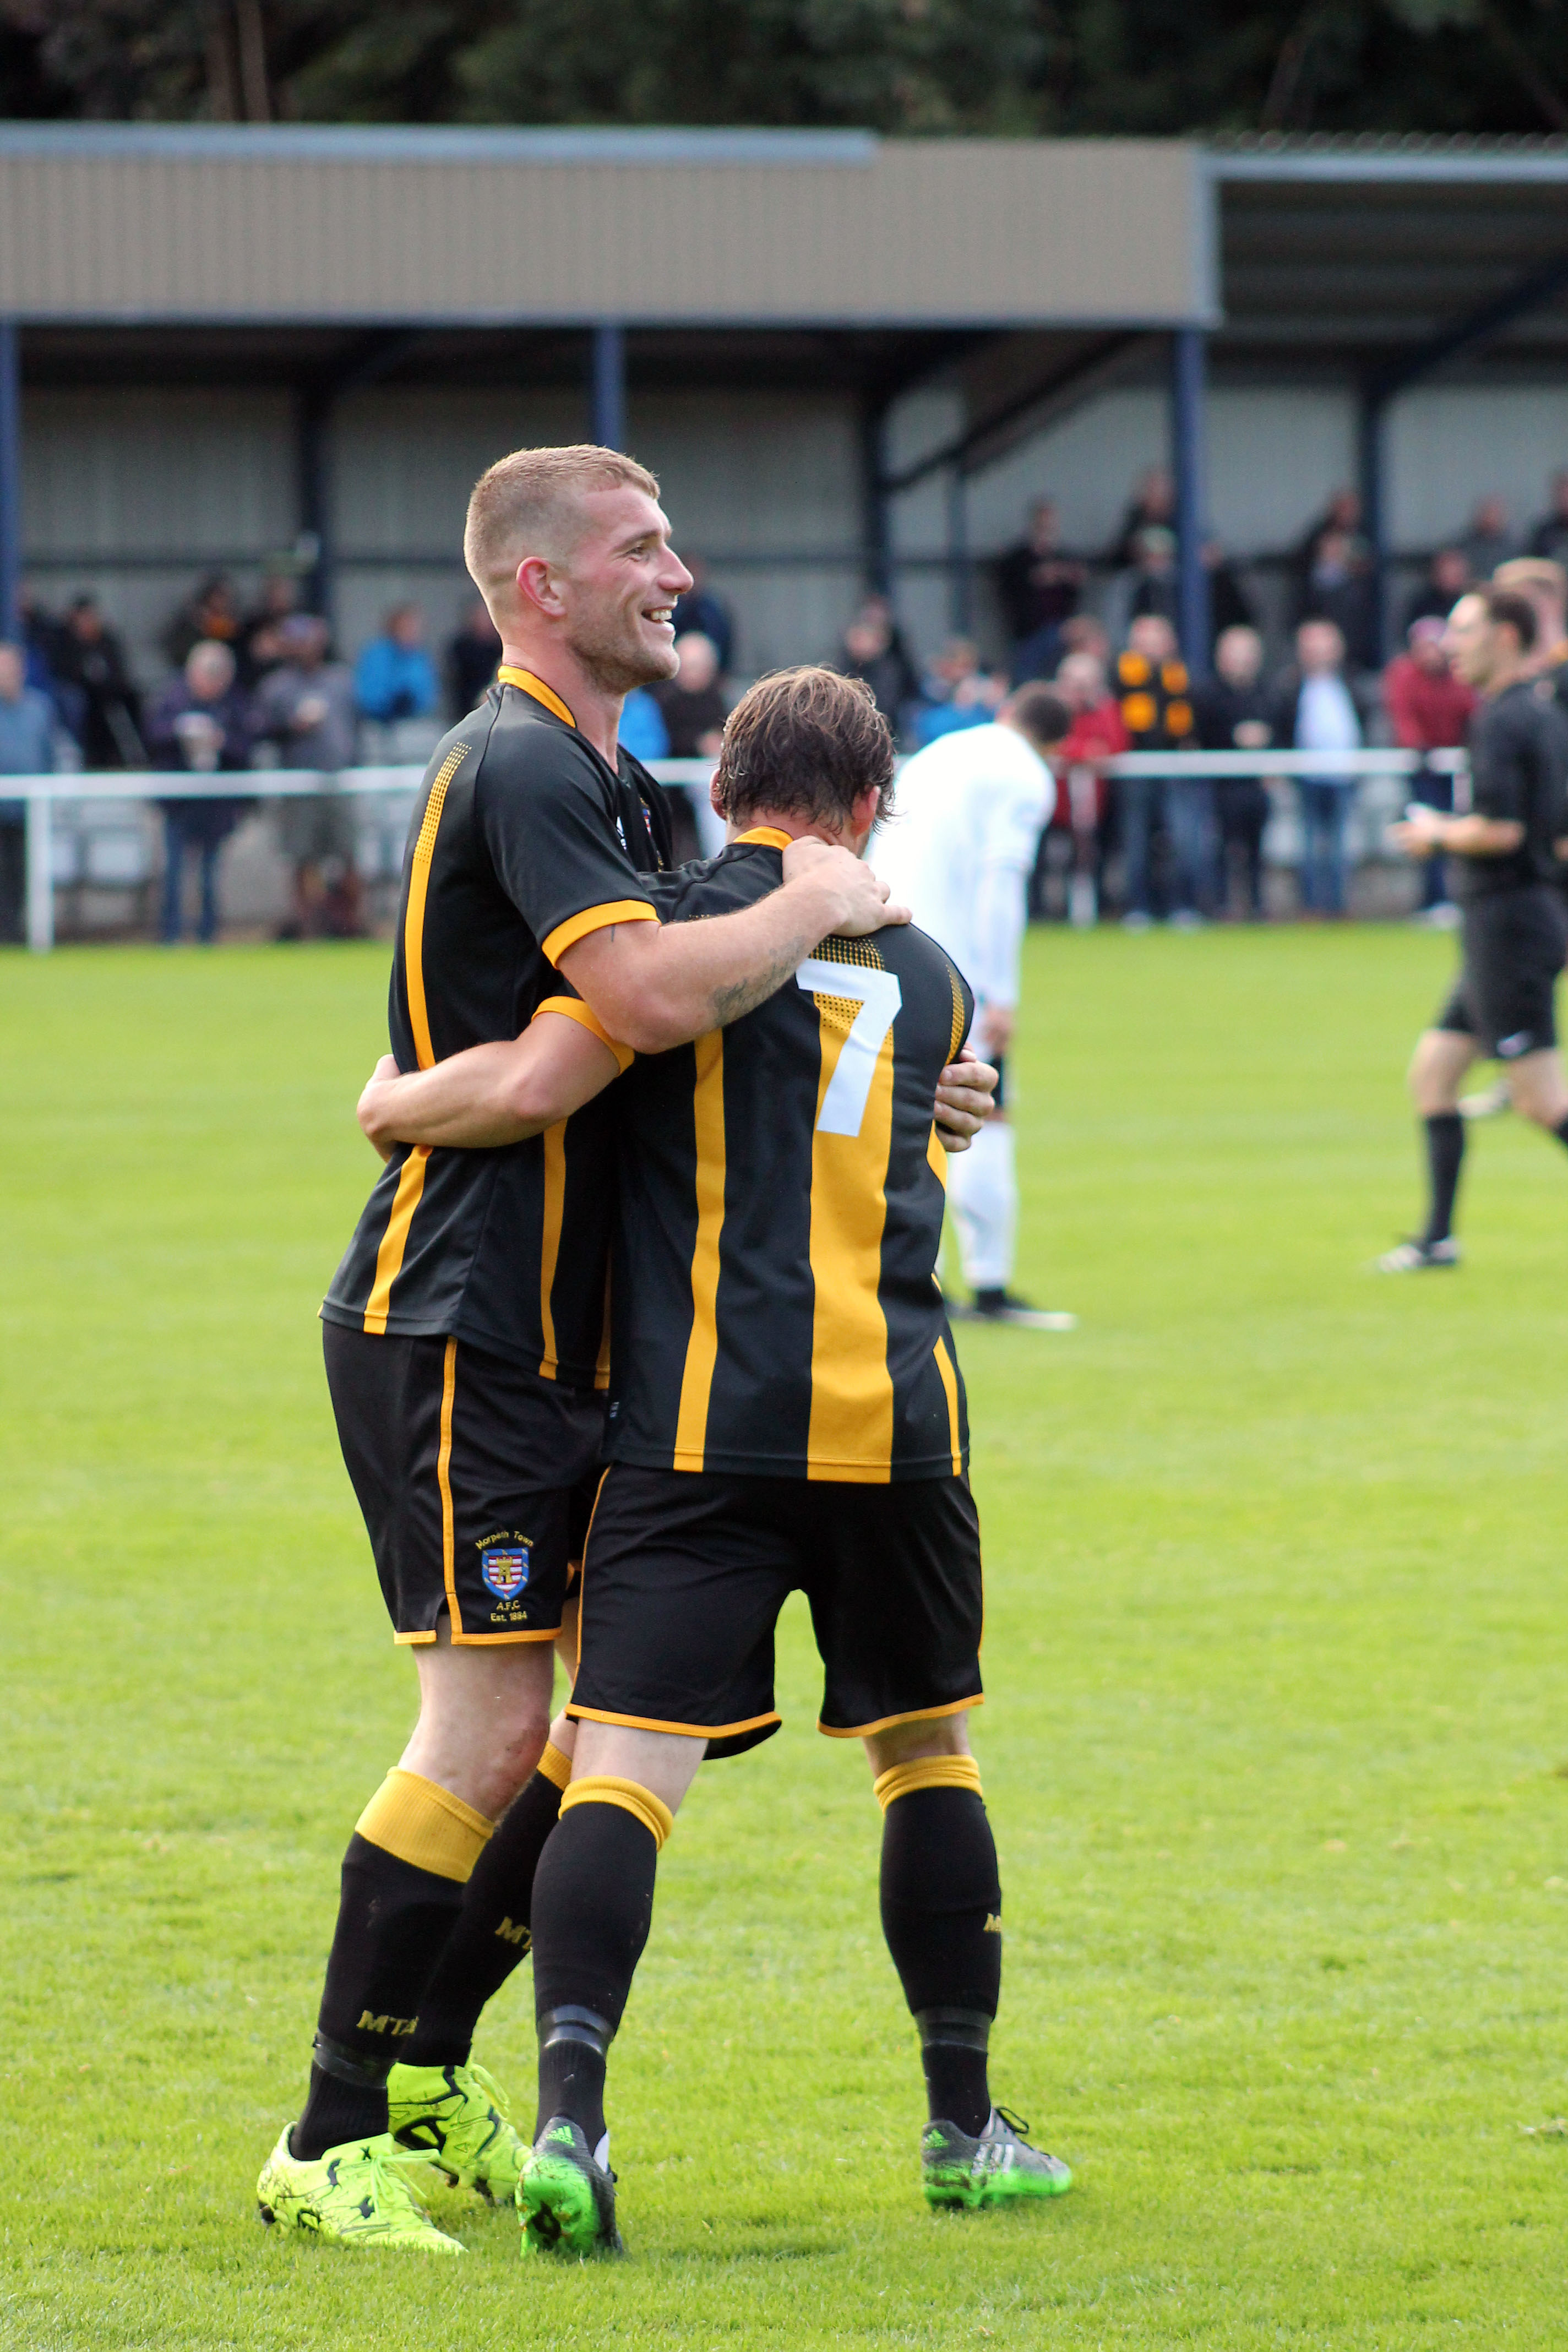 MORPETH TOWN v WEST ALLOTMENT 18